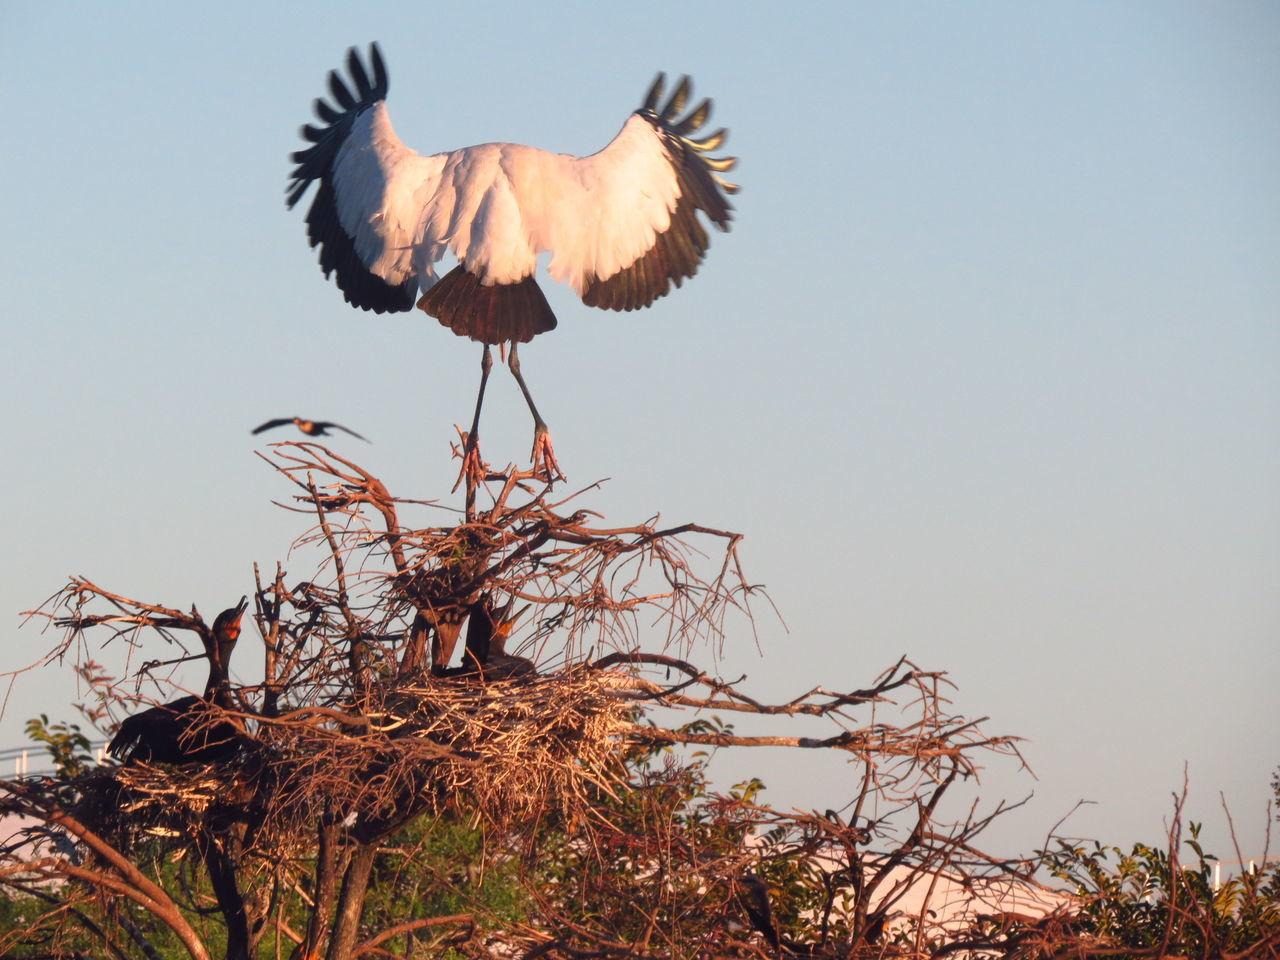 Low Angle View Of Wood Stork Against Clear Sky